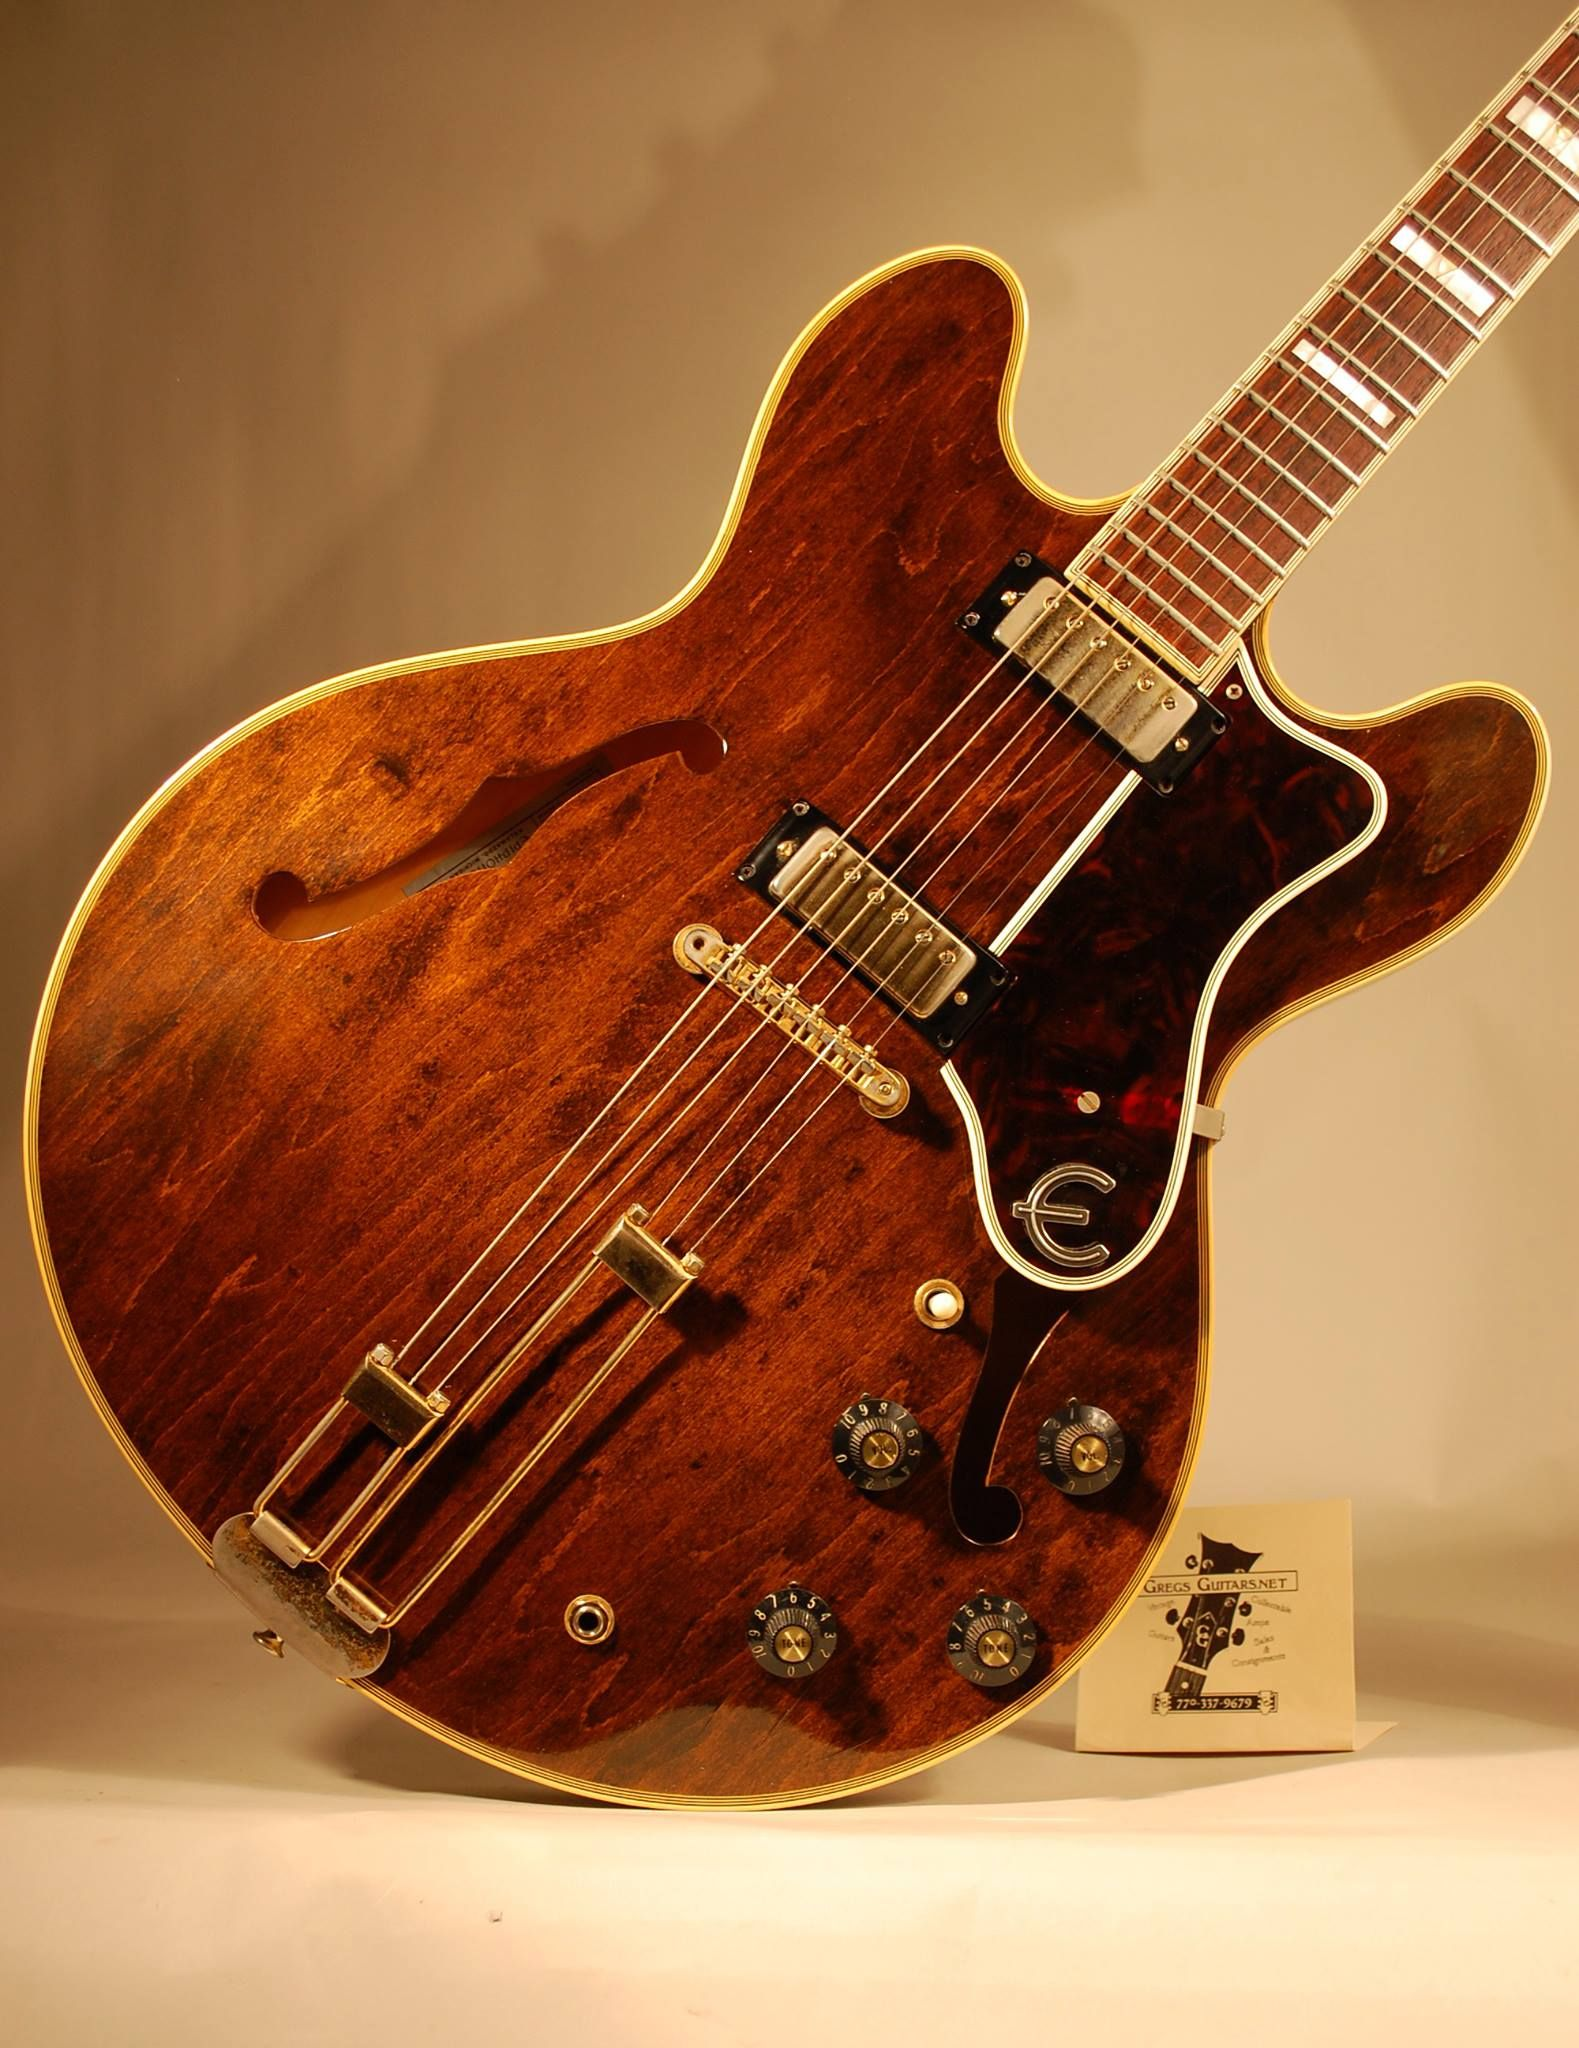 1966 Epiphone Sheraton Great Guitar But Im Not Crazy About The